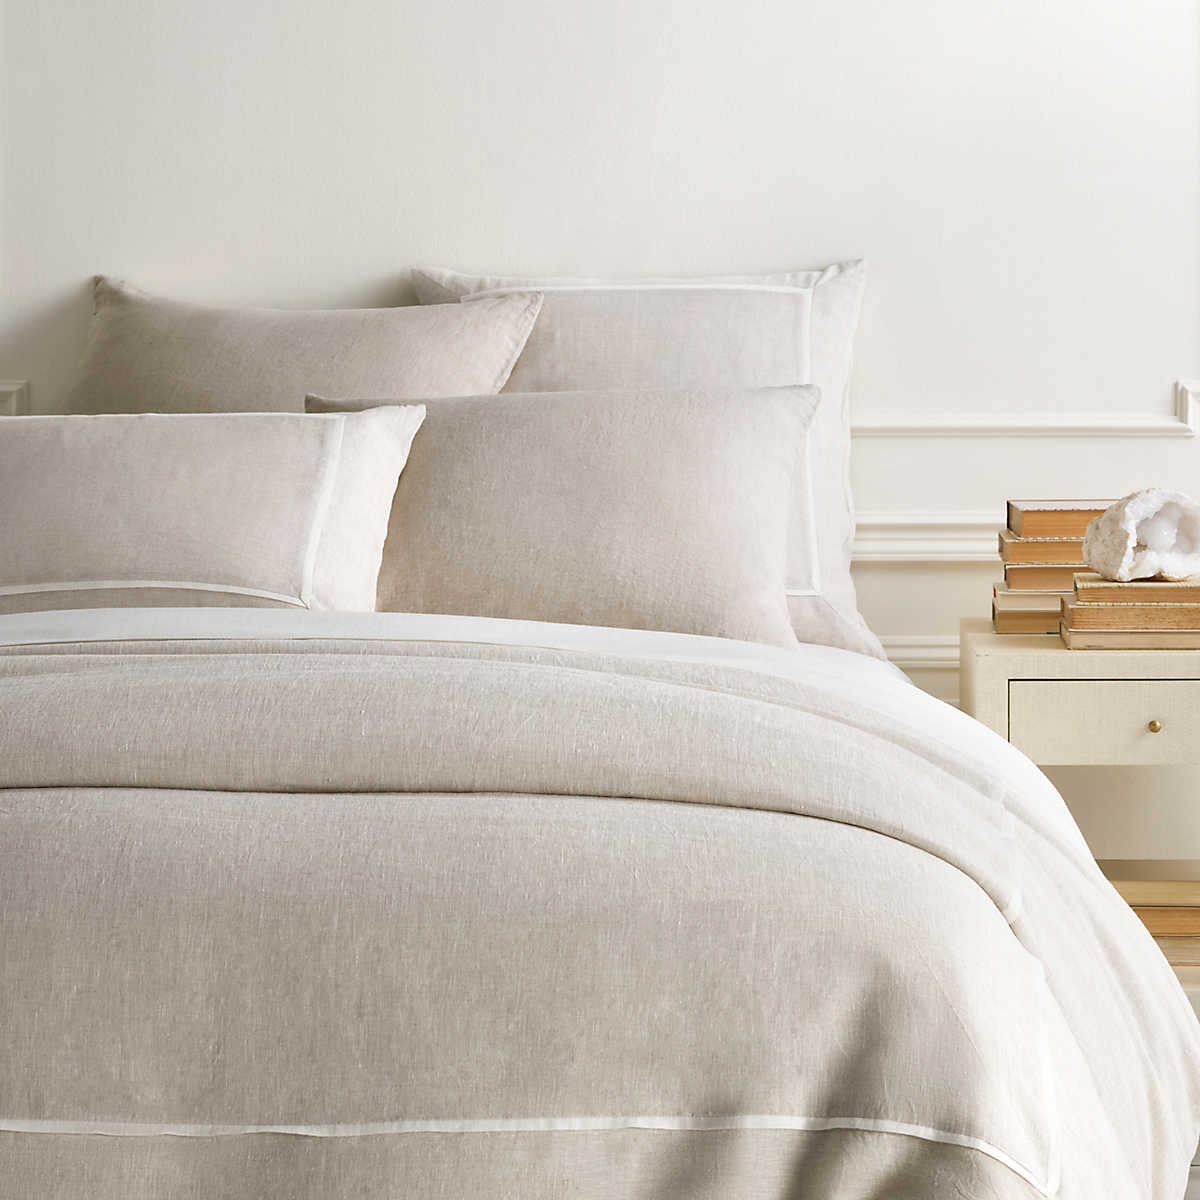 Keaton Linen Natural Duvet Cover Pine Cone Hill